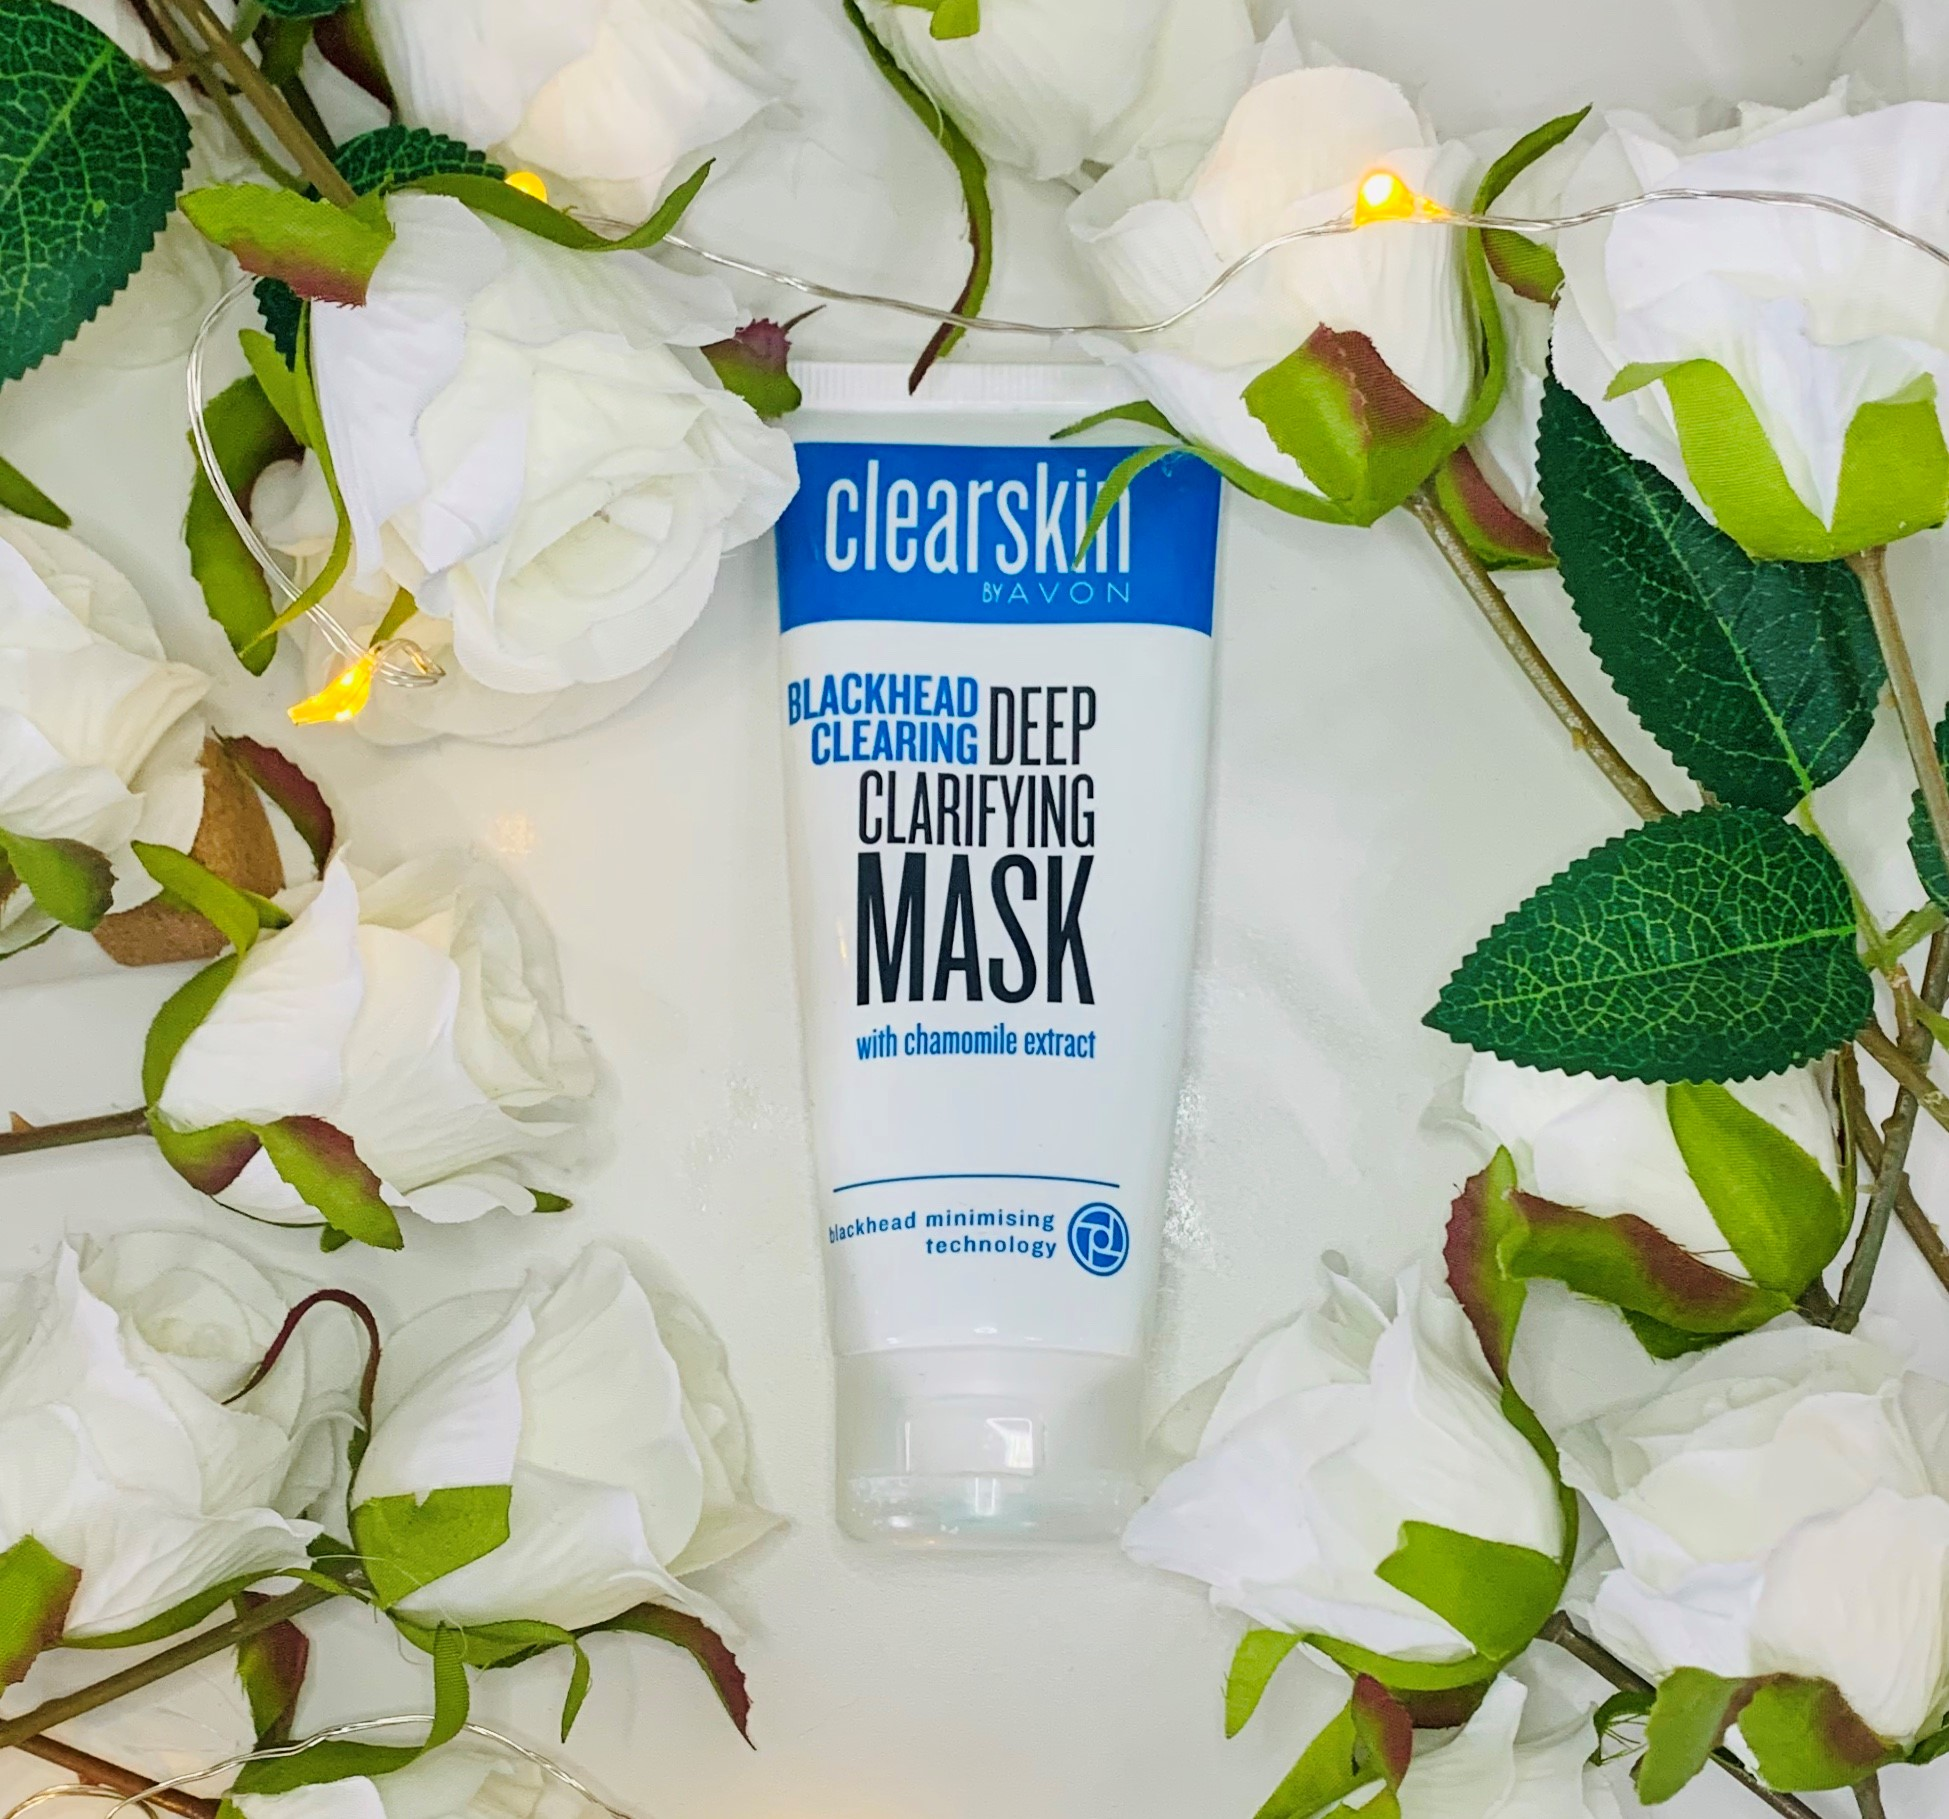 Avon Blackhead Clearing Face Mask. Face masks for oily skin